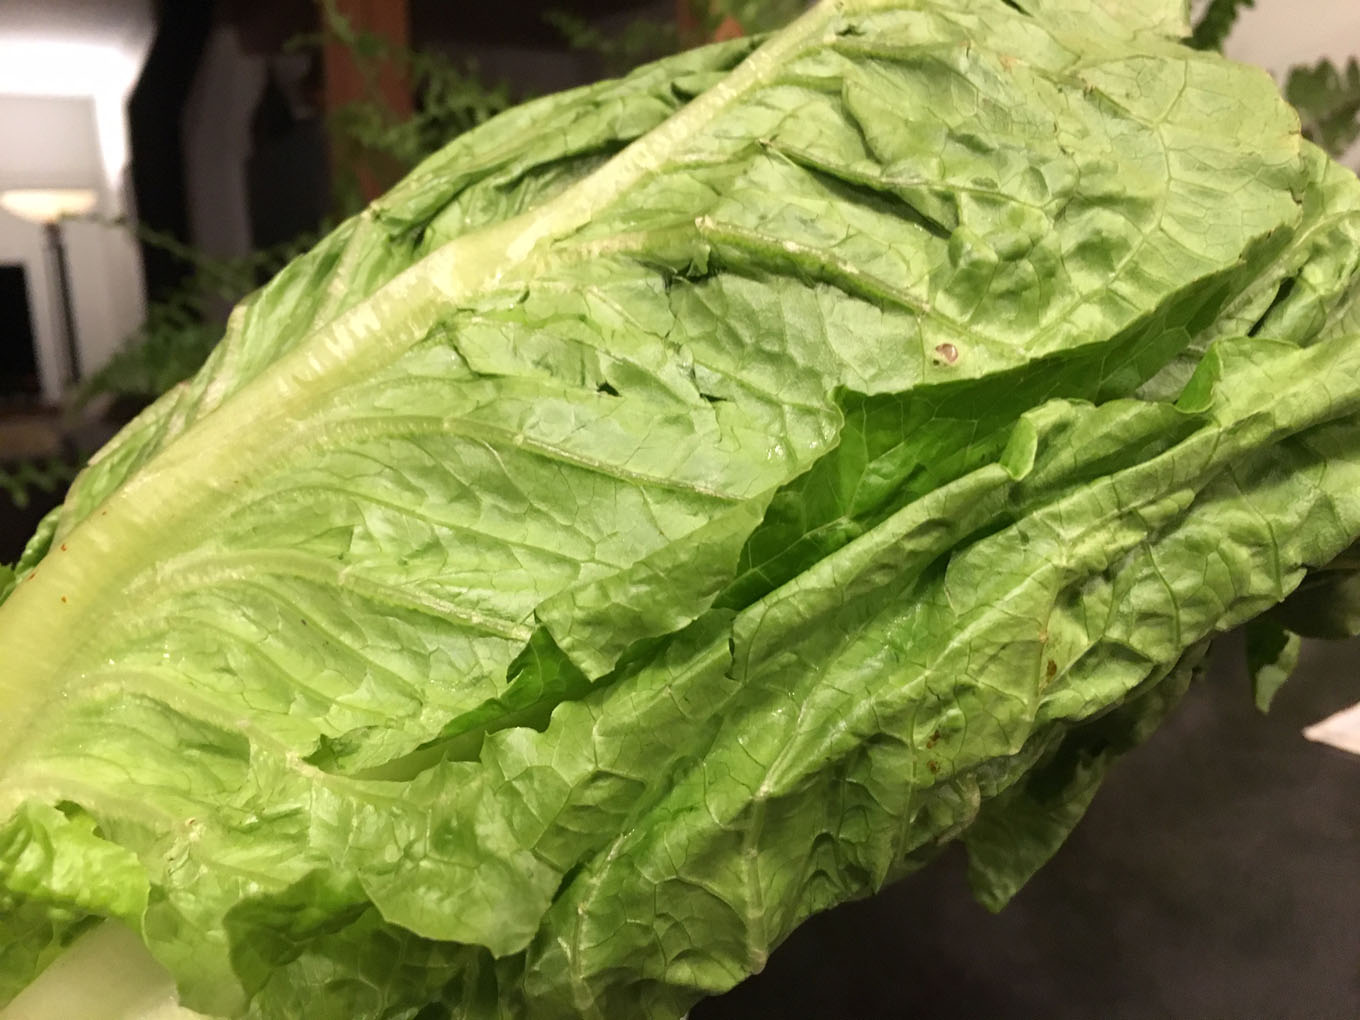 Massy Stores Pulls Romaine Lettuce From Shelves